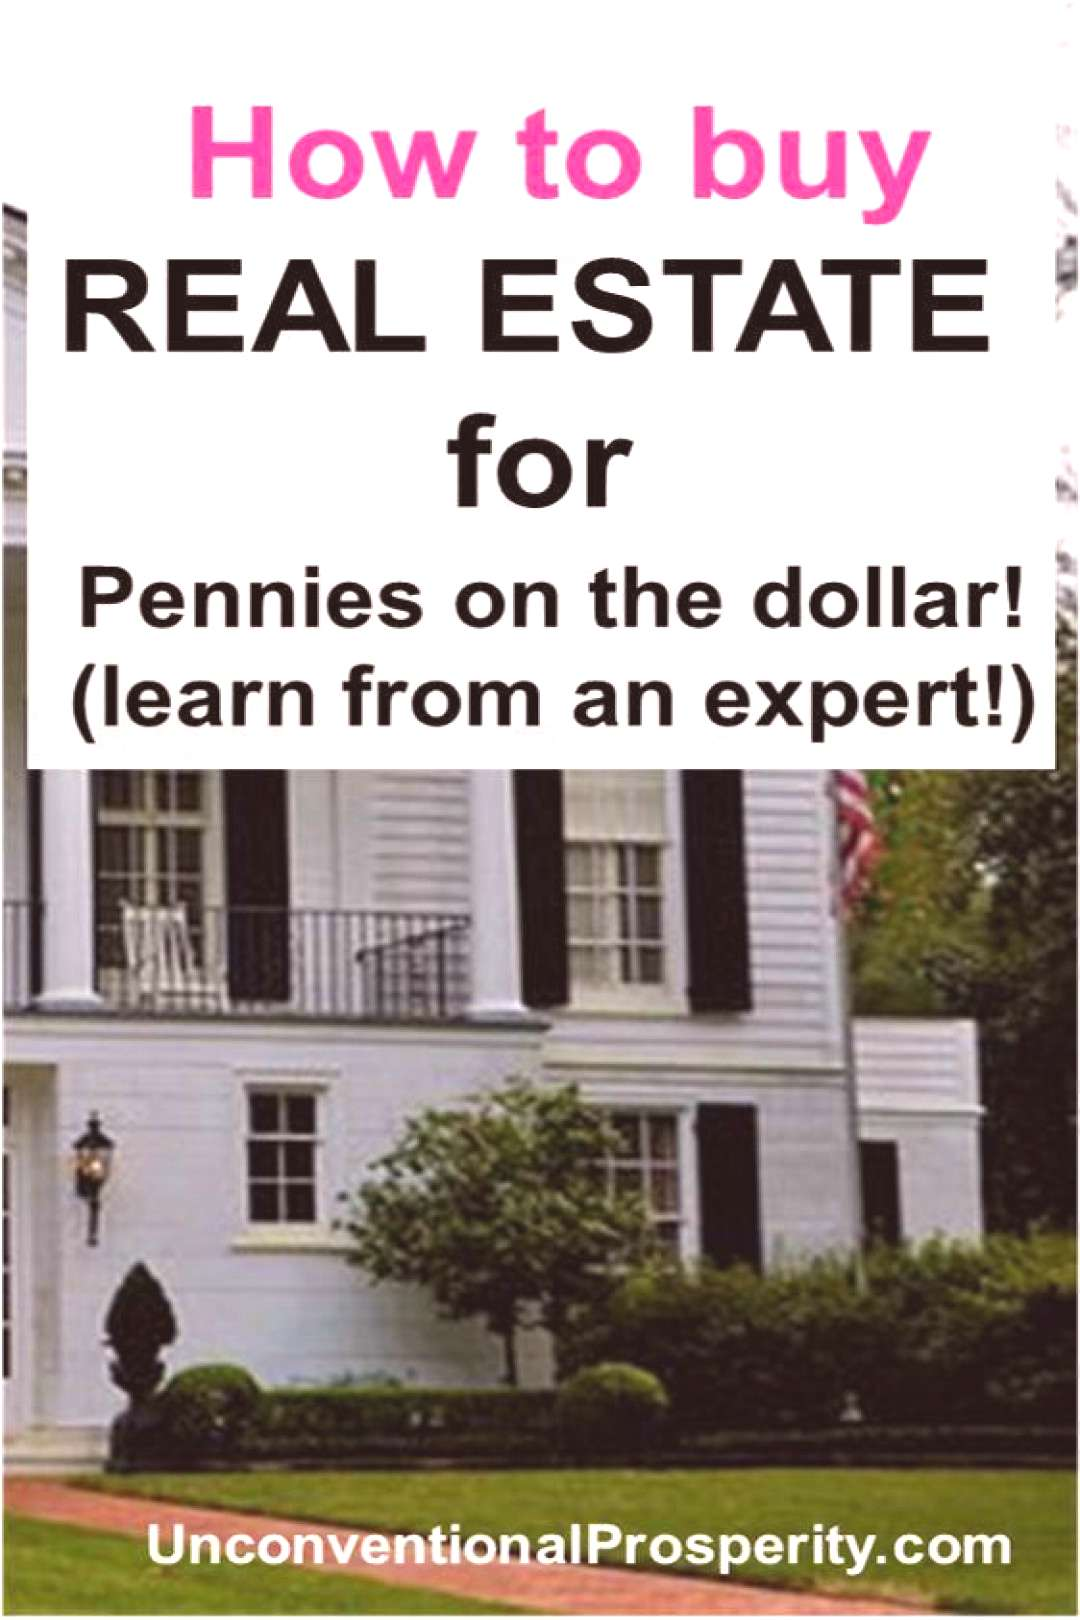 How to Buy Real Estate for Pennies on the Dollar - Unconventional Prosperity#buy